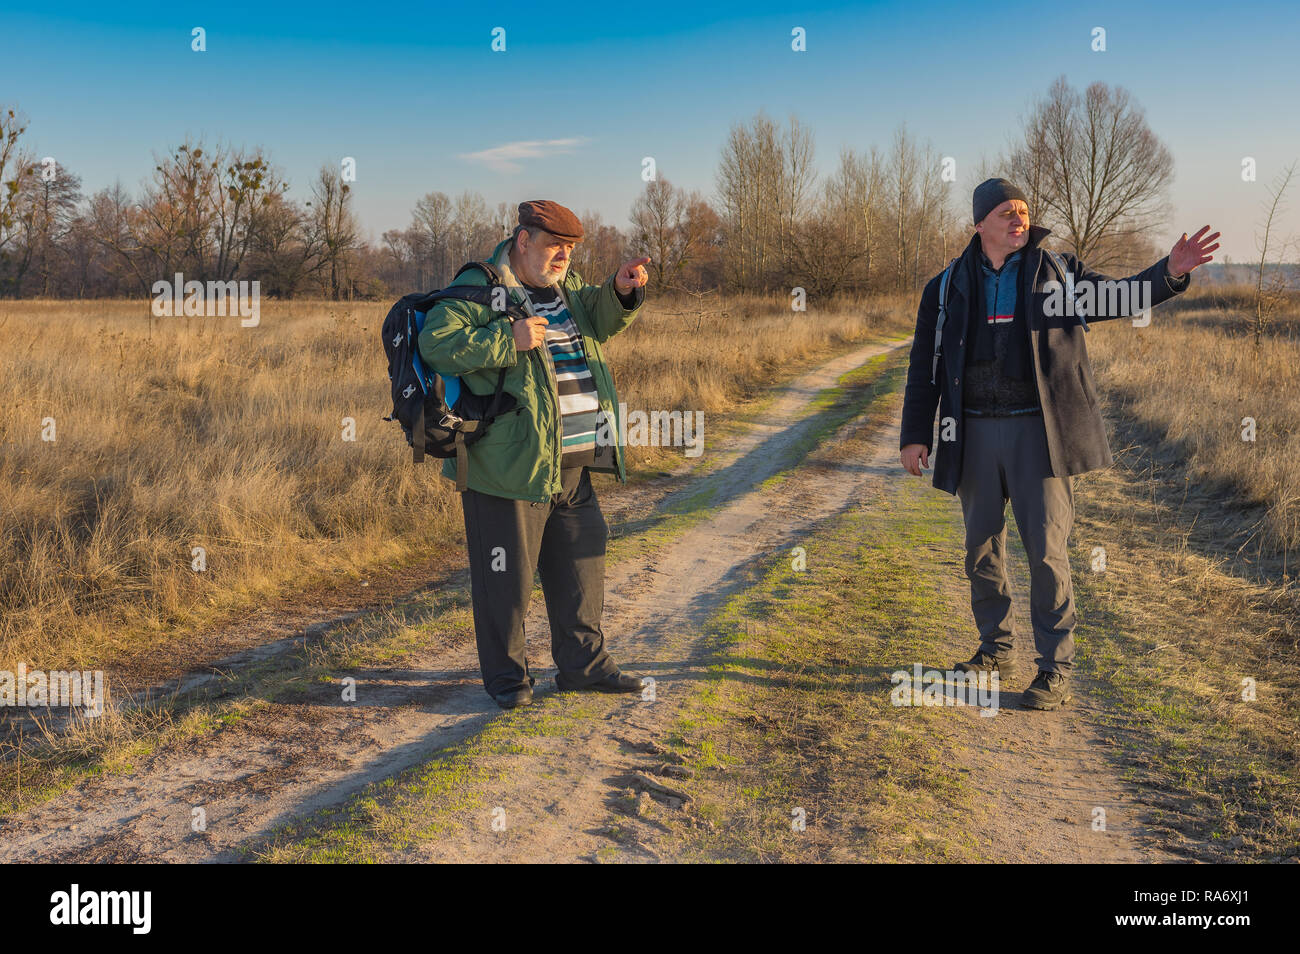 Two senior hikers with backpacks discussing correct path while walking on a country road at autumnal evening - Stock Image